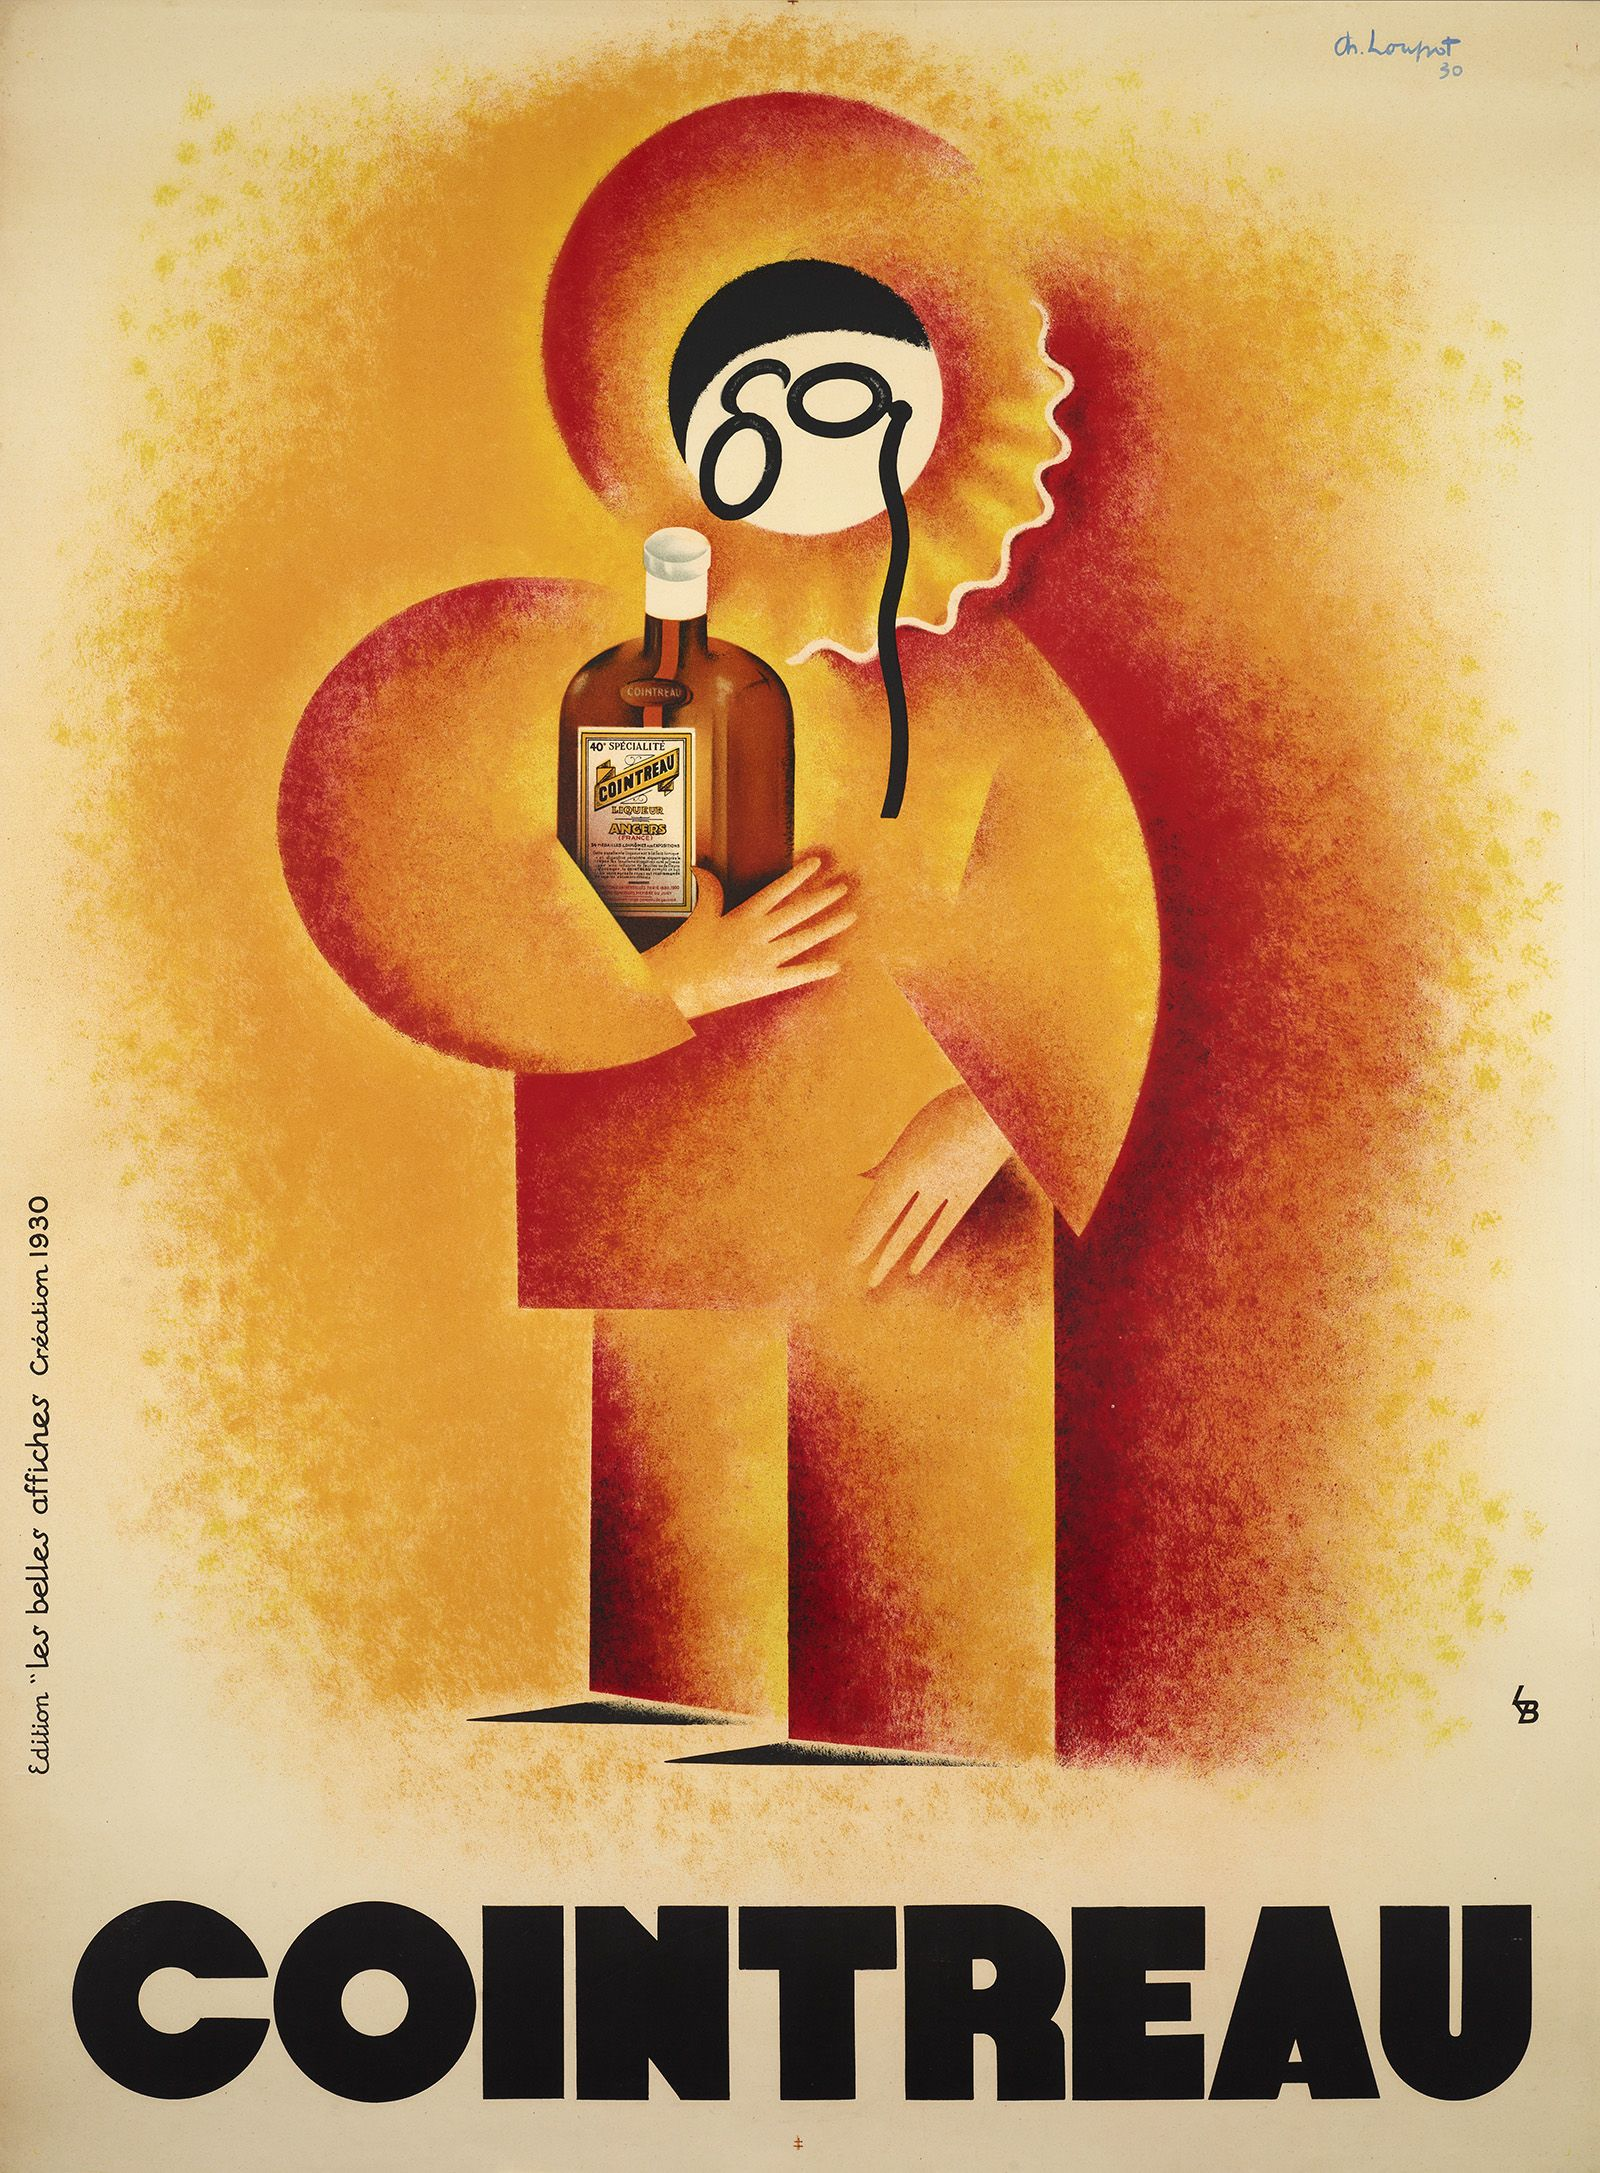 Cointreau by Charles Loupot art deco poster in 1930!  available on our website